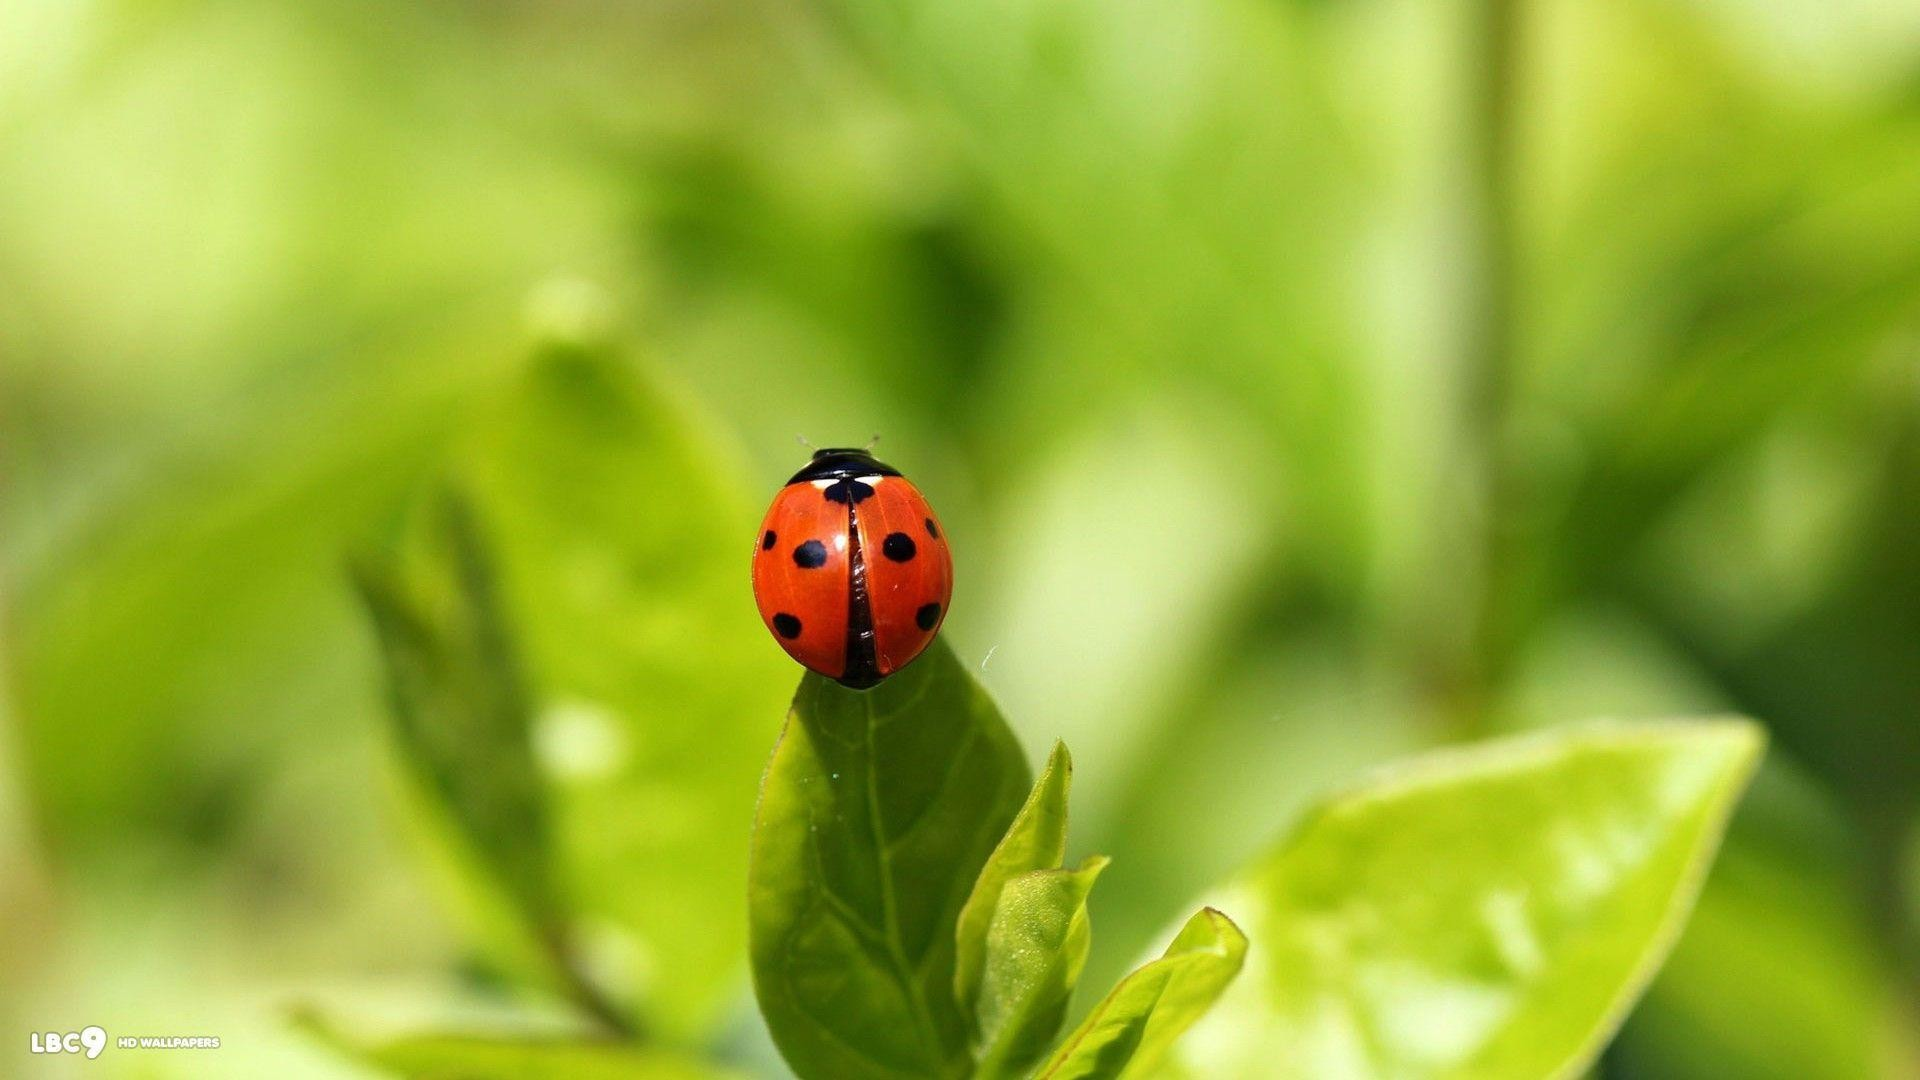 Res: 1920x1080, Lady Bug Wallpapers